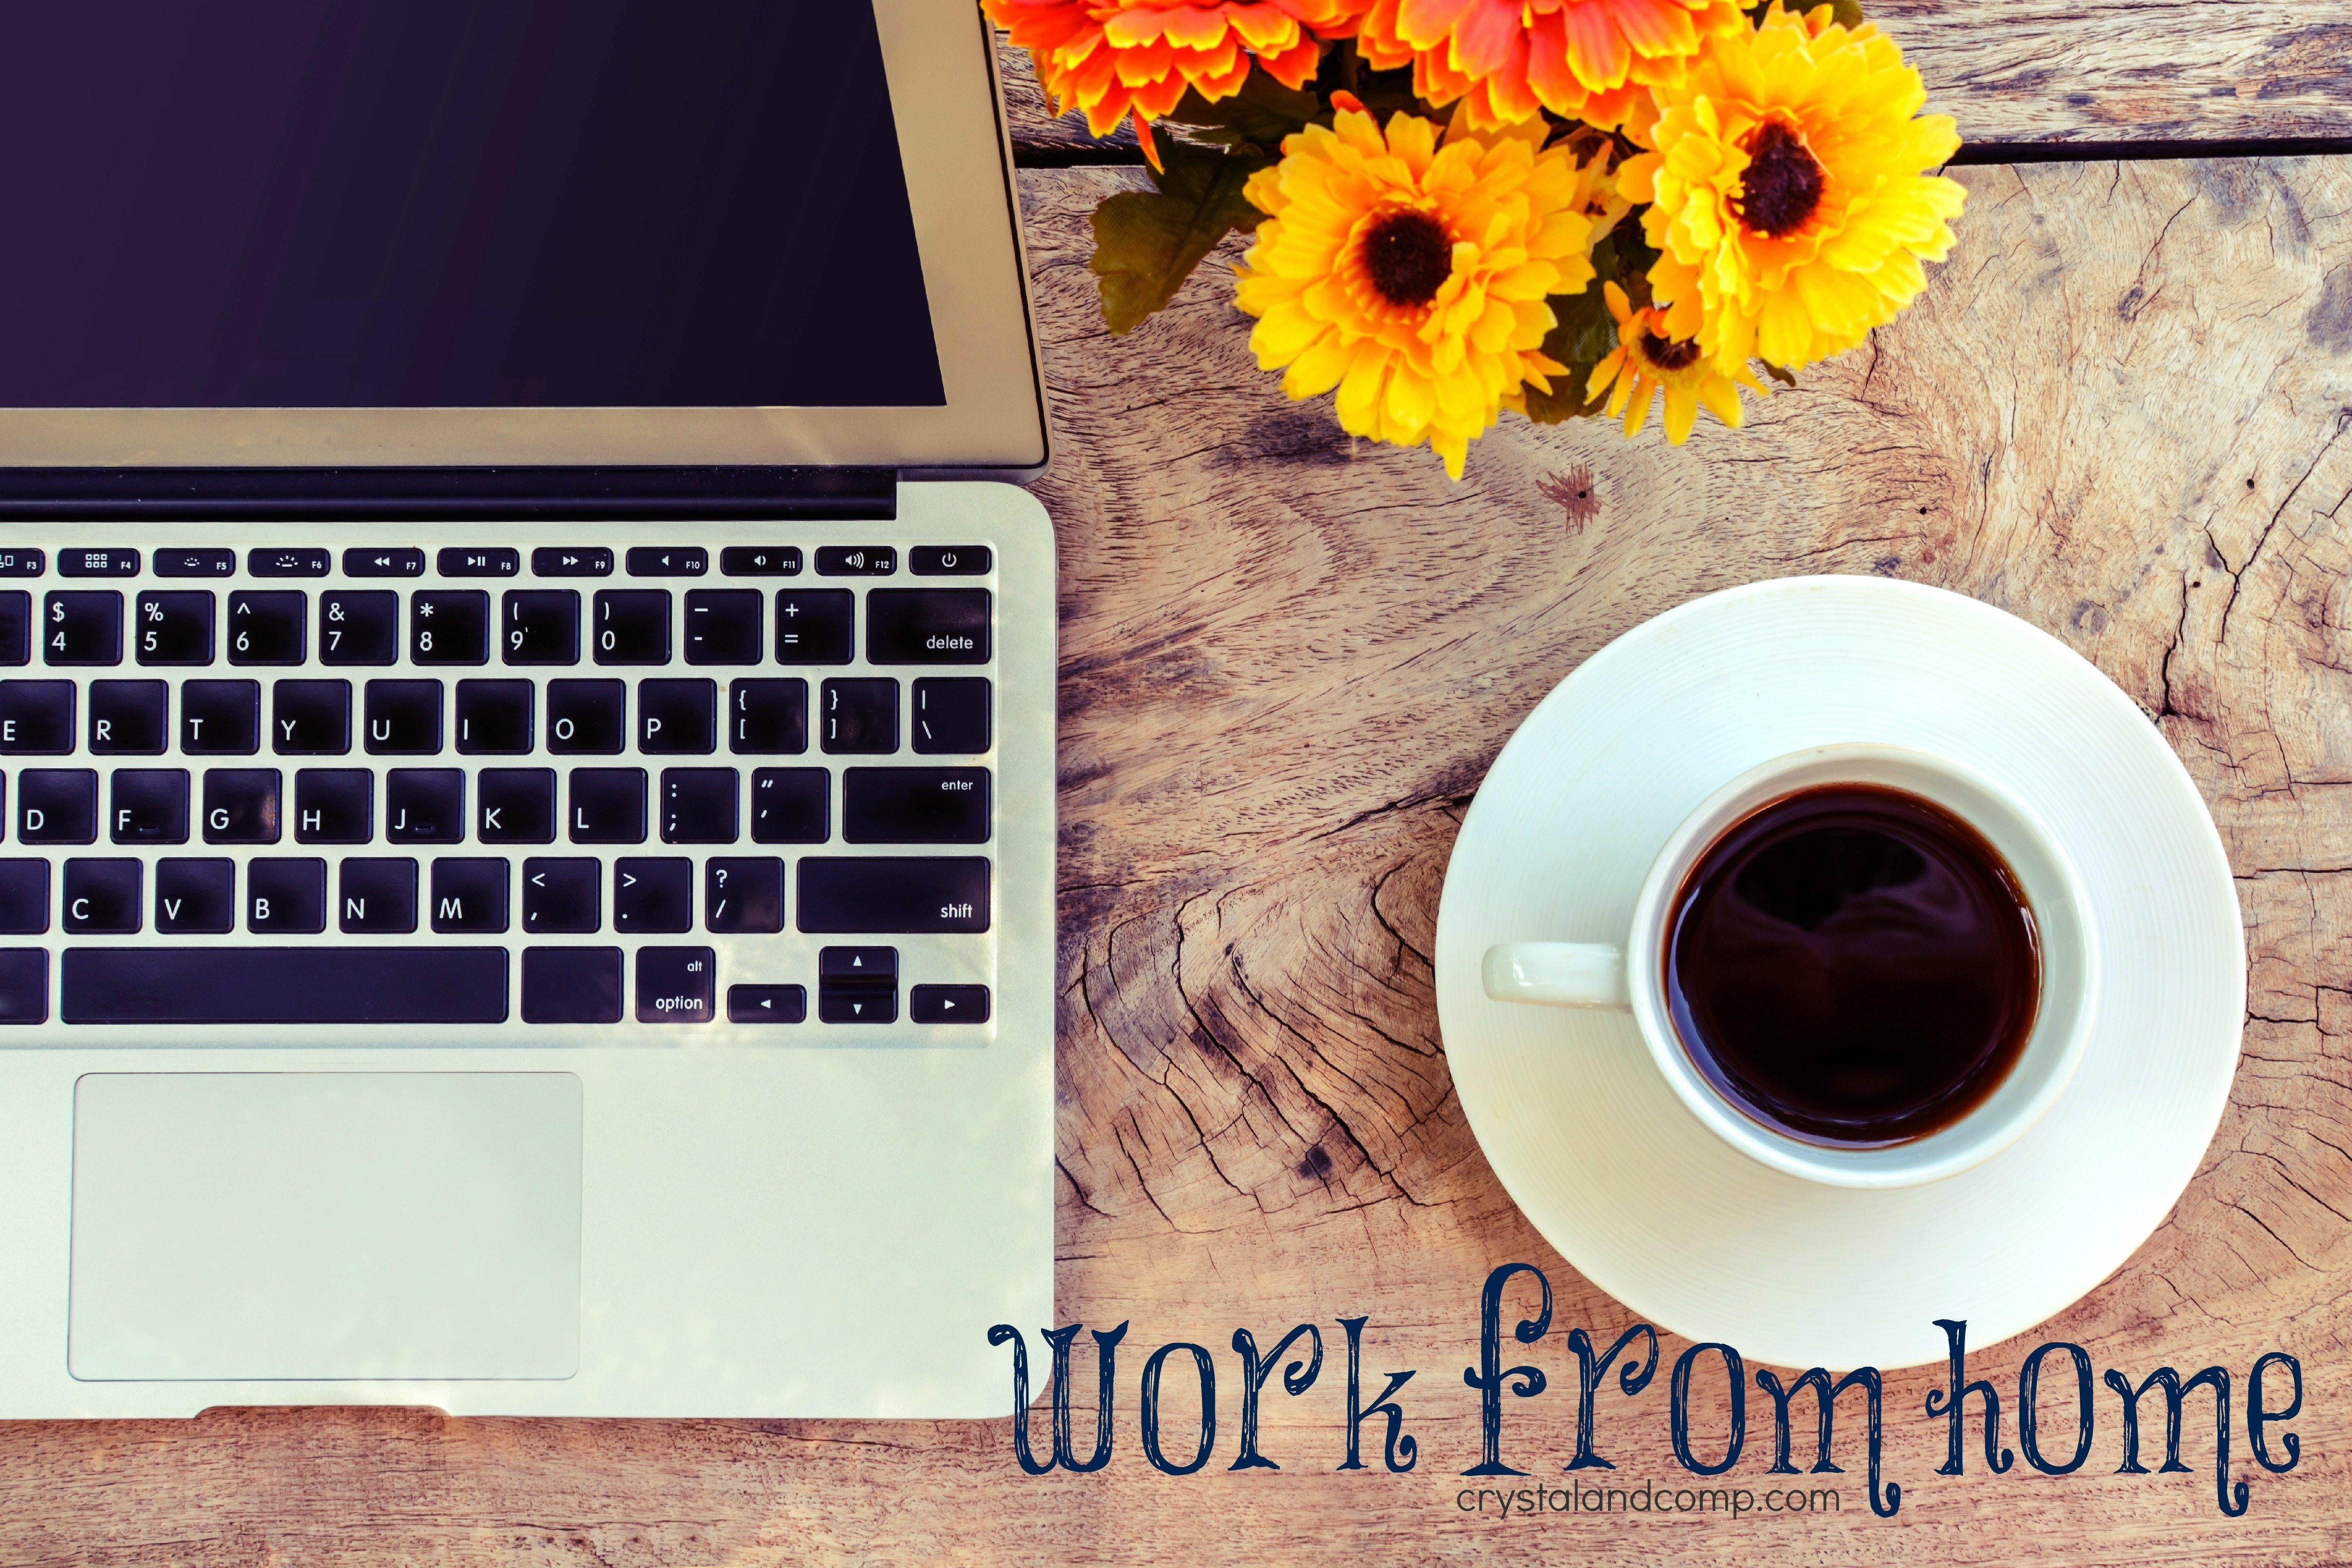 10 Most Popular Work From Home Ideas 2013 work at home find a wahm job 2020